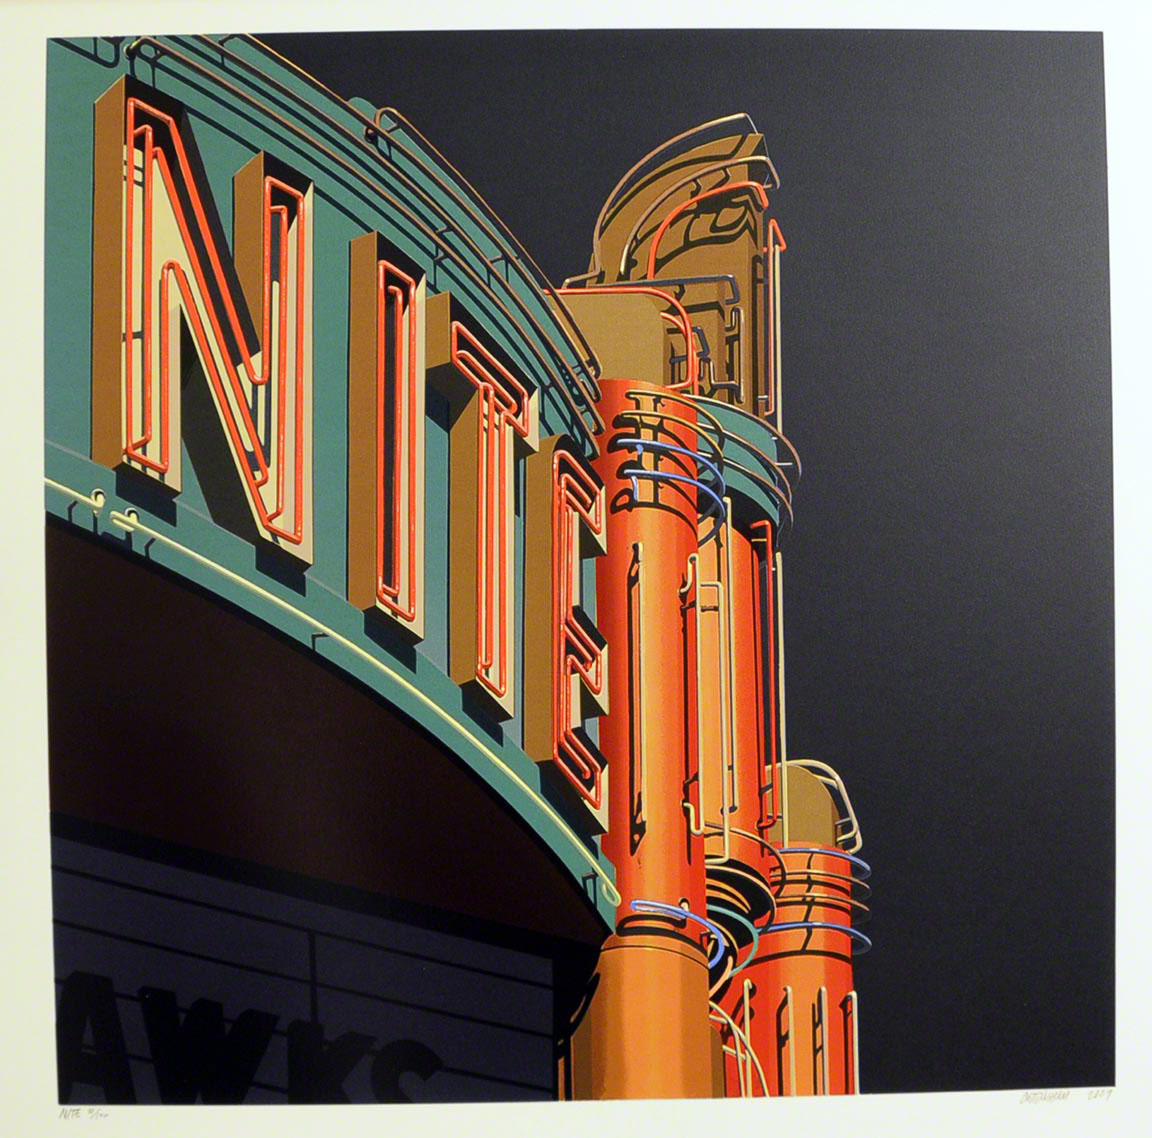 American Signs NITE by Robert Cottingham